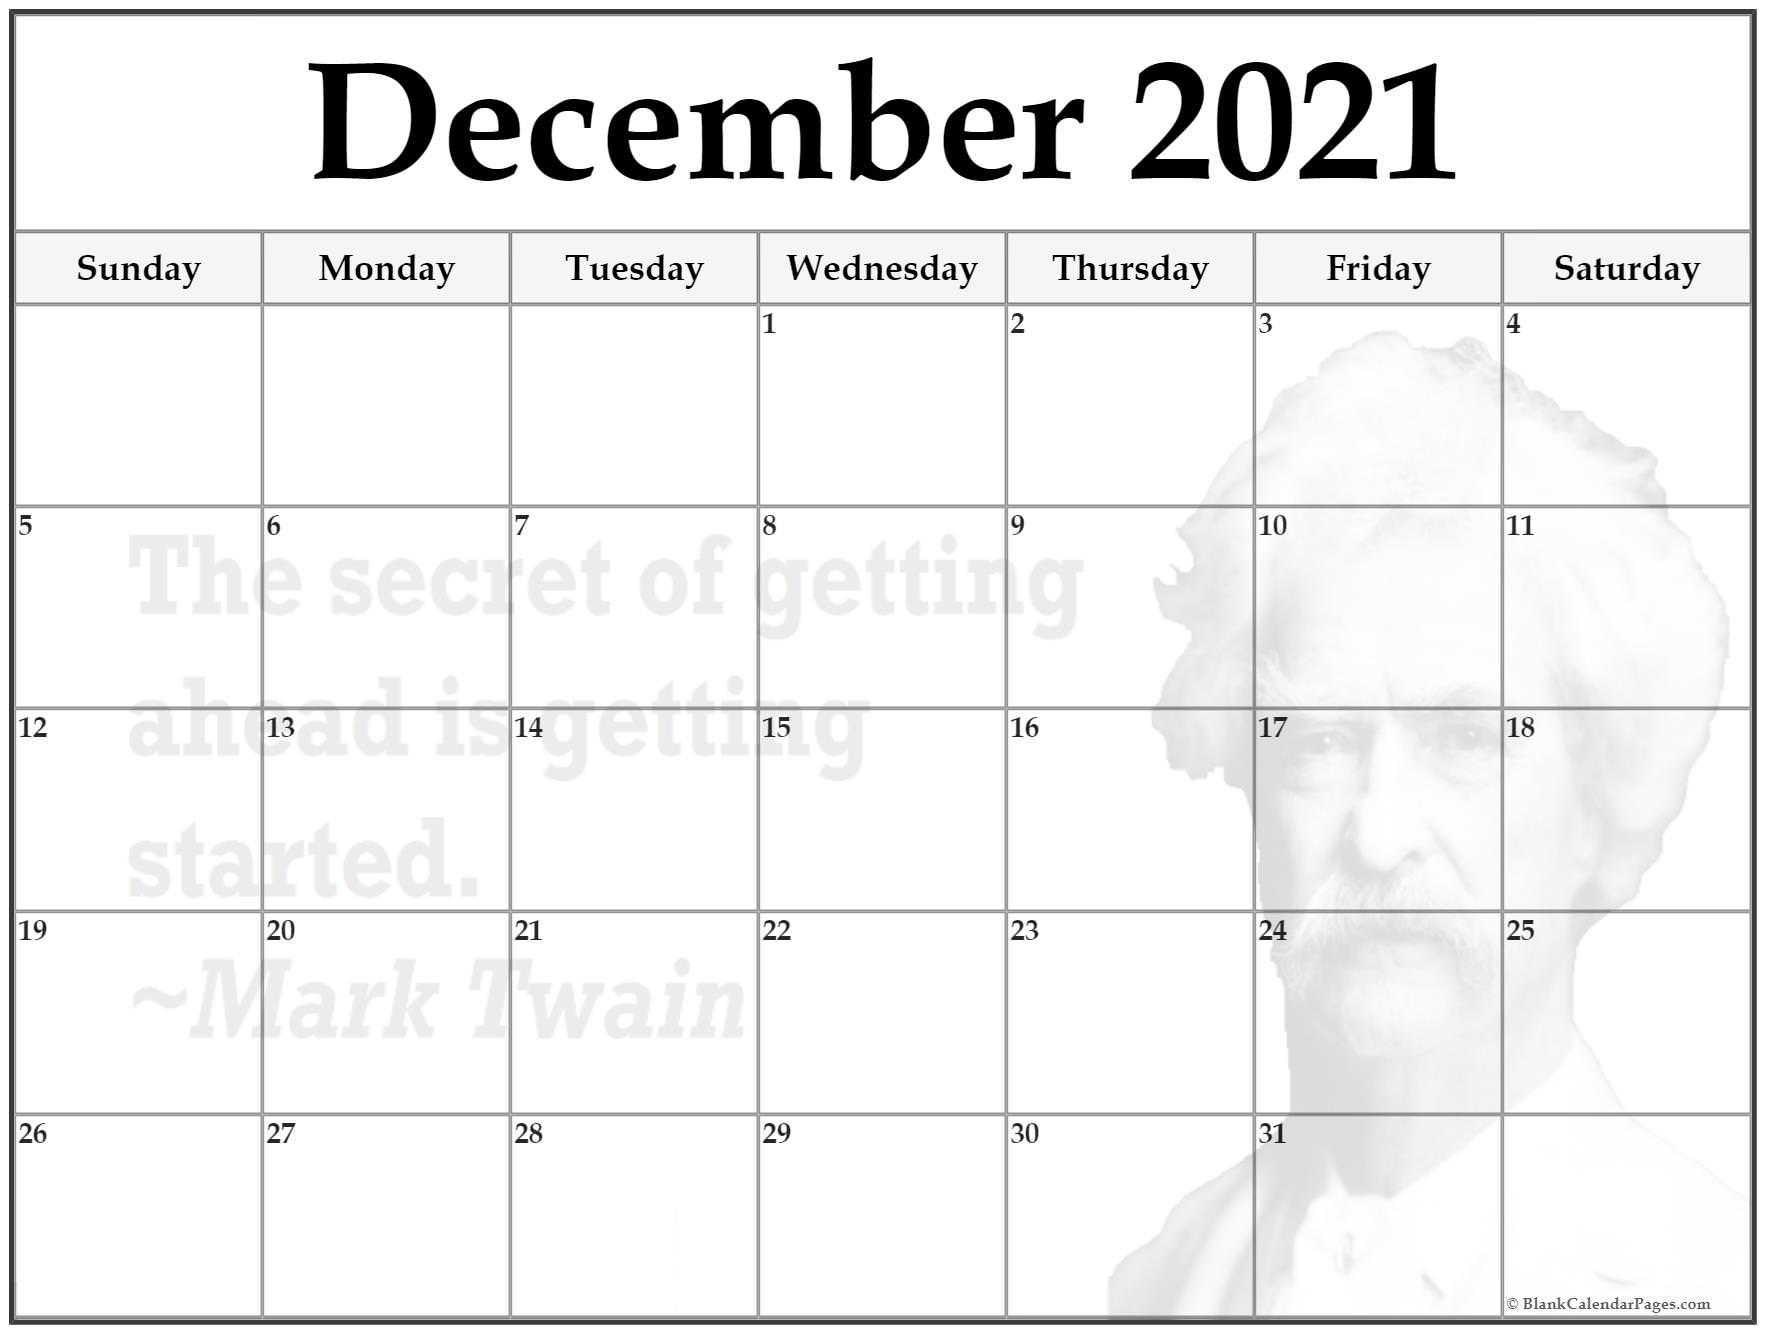 December 2021 printable quote calendar template. The secret of getting ahead is getting started. ~Mark Twain